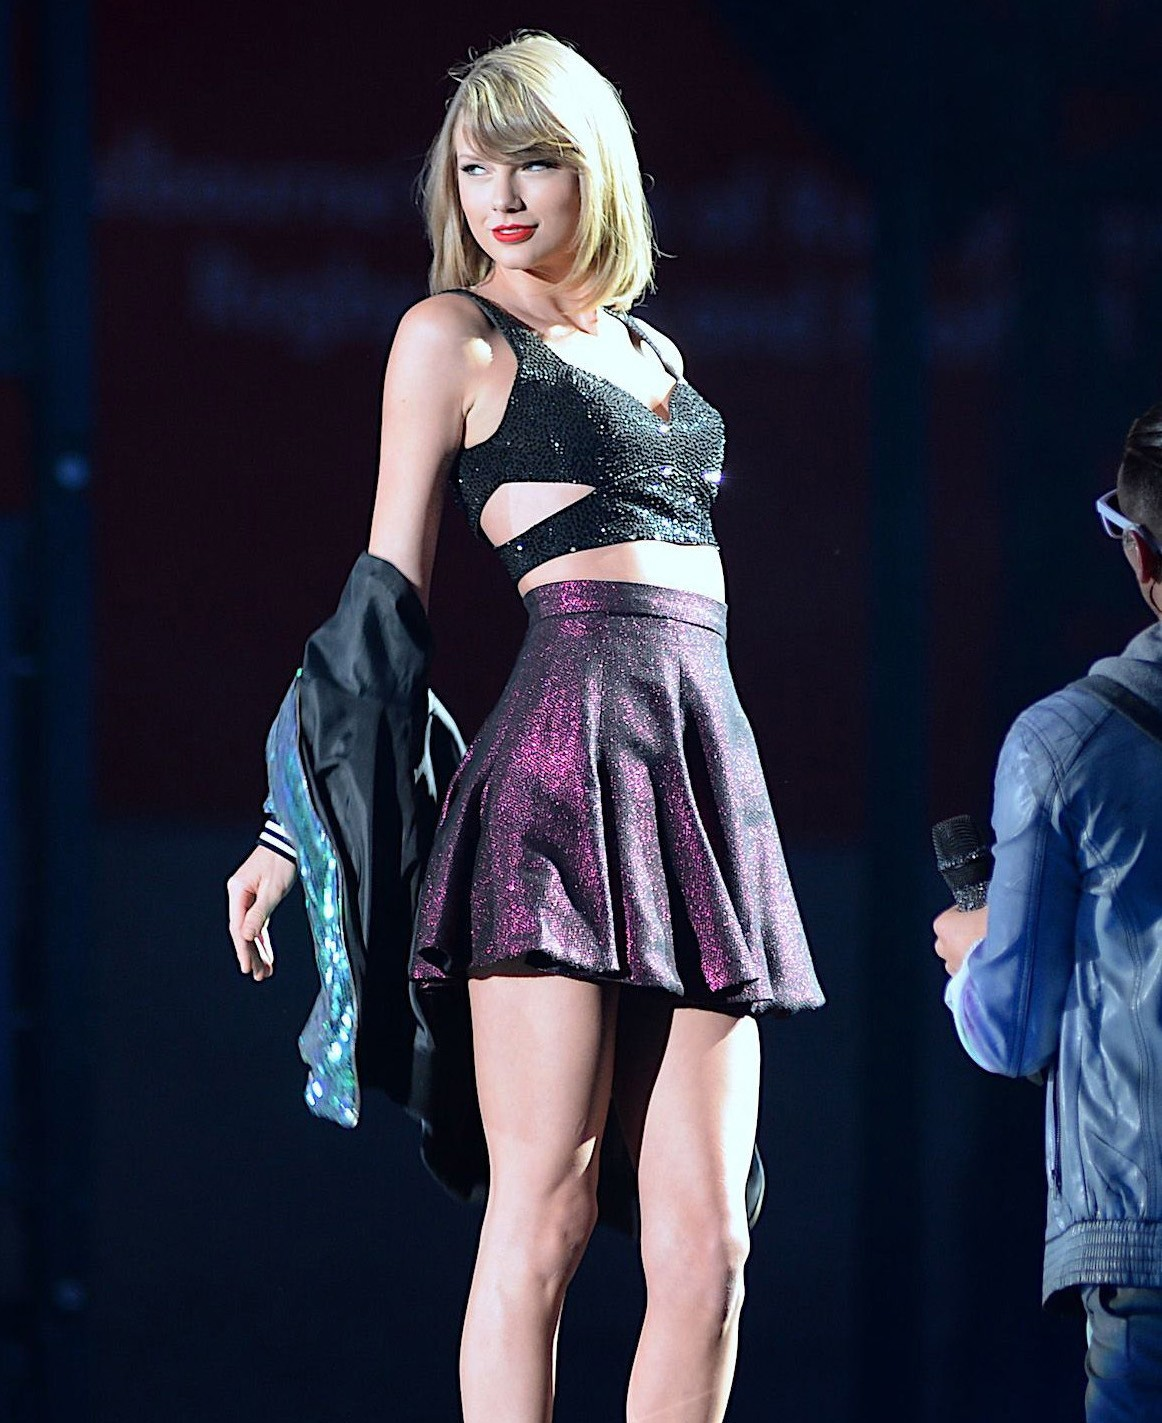 Taylor Swift's new clothing line debuts in Hong Kong